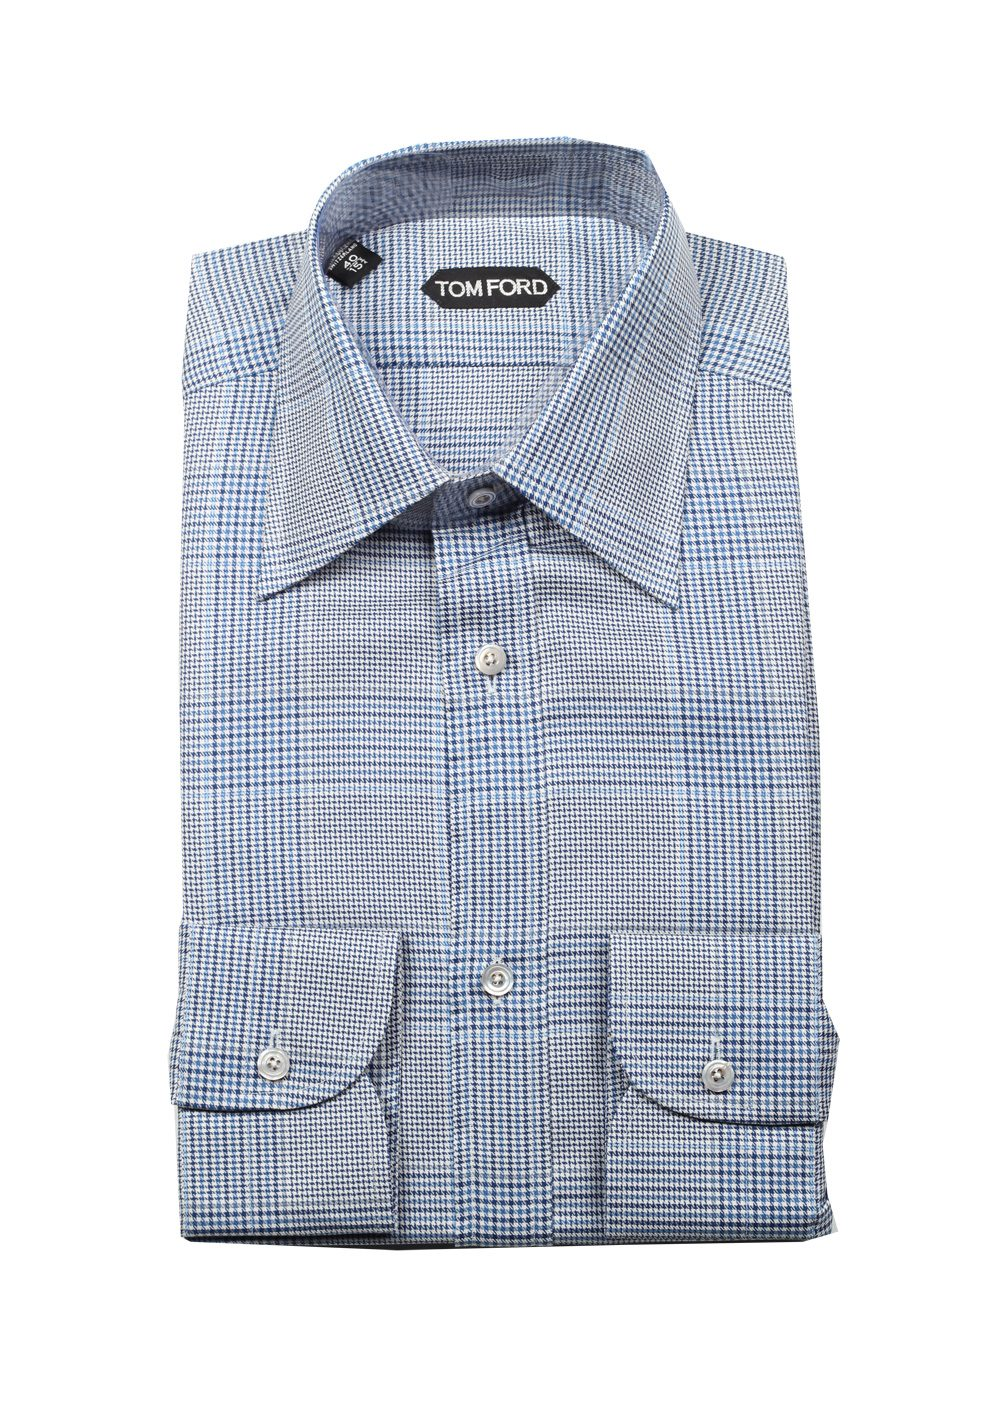 Tom ford checked white blue dress shirt size 40 15 75 u for Size 15 dress shirt